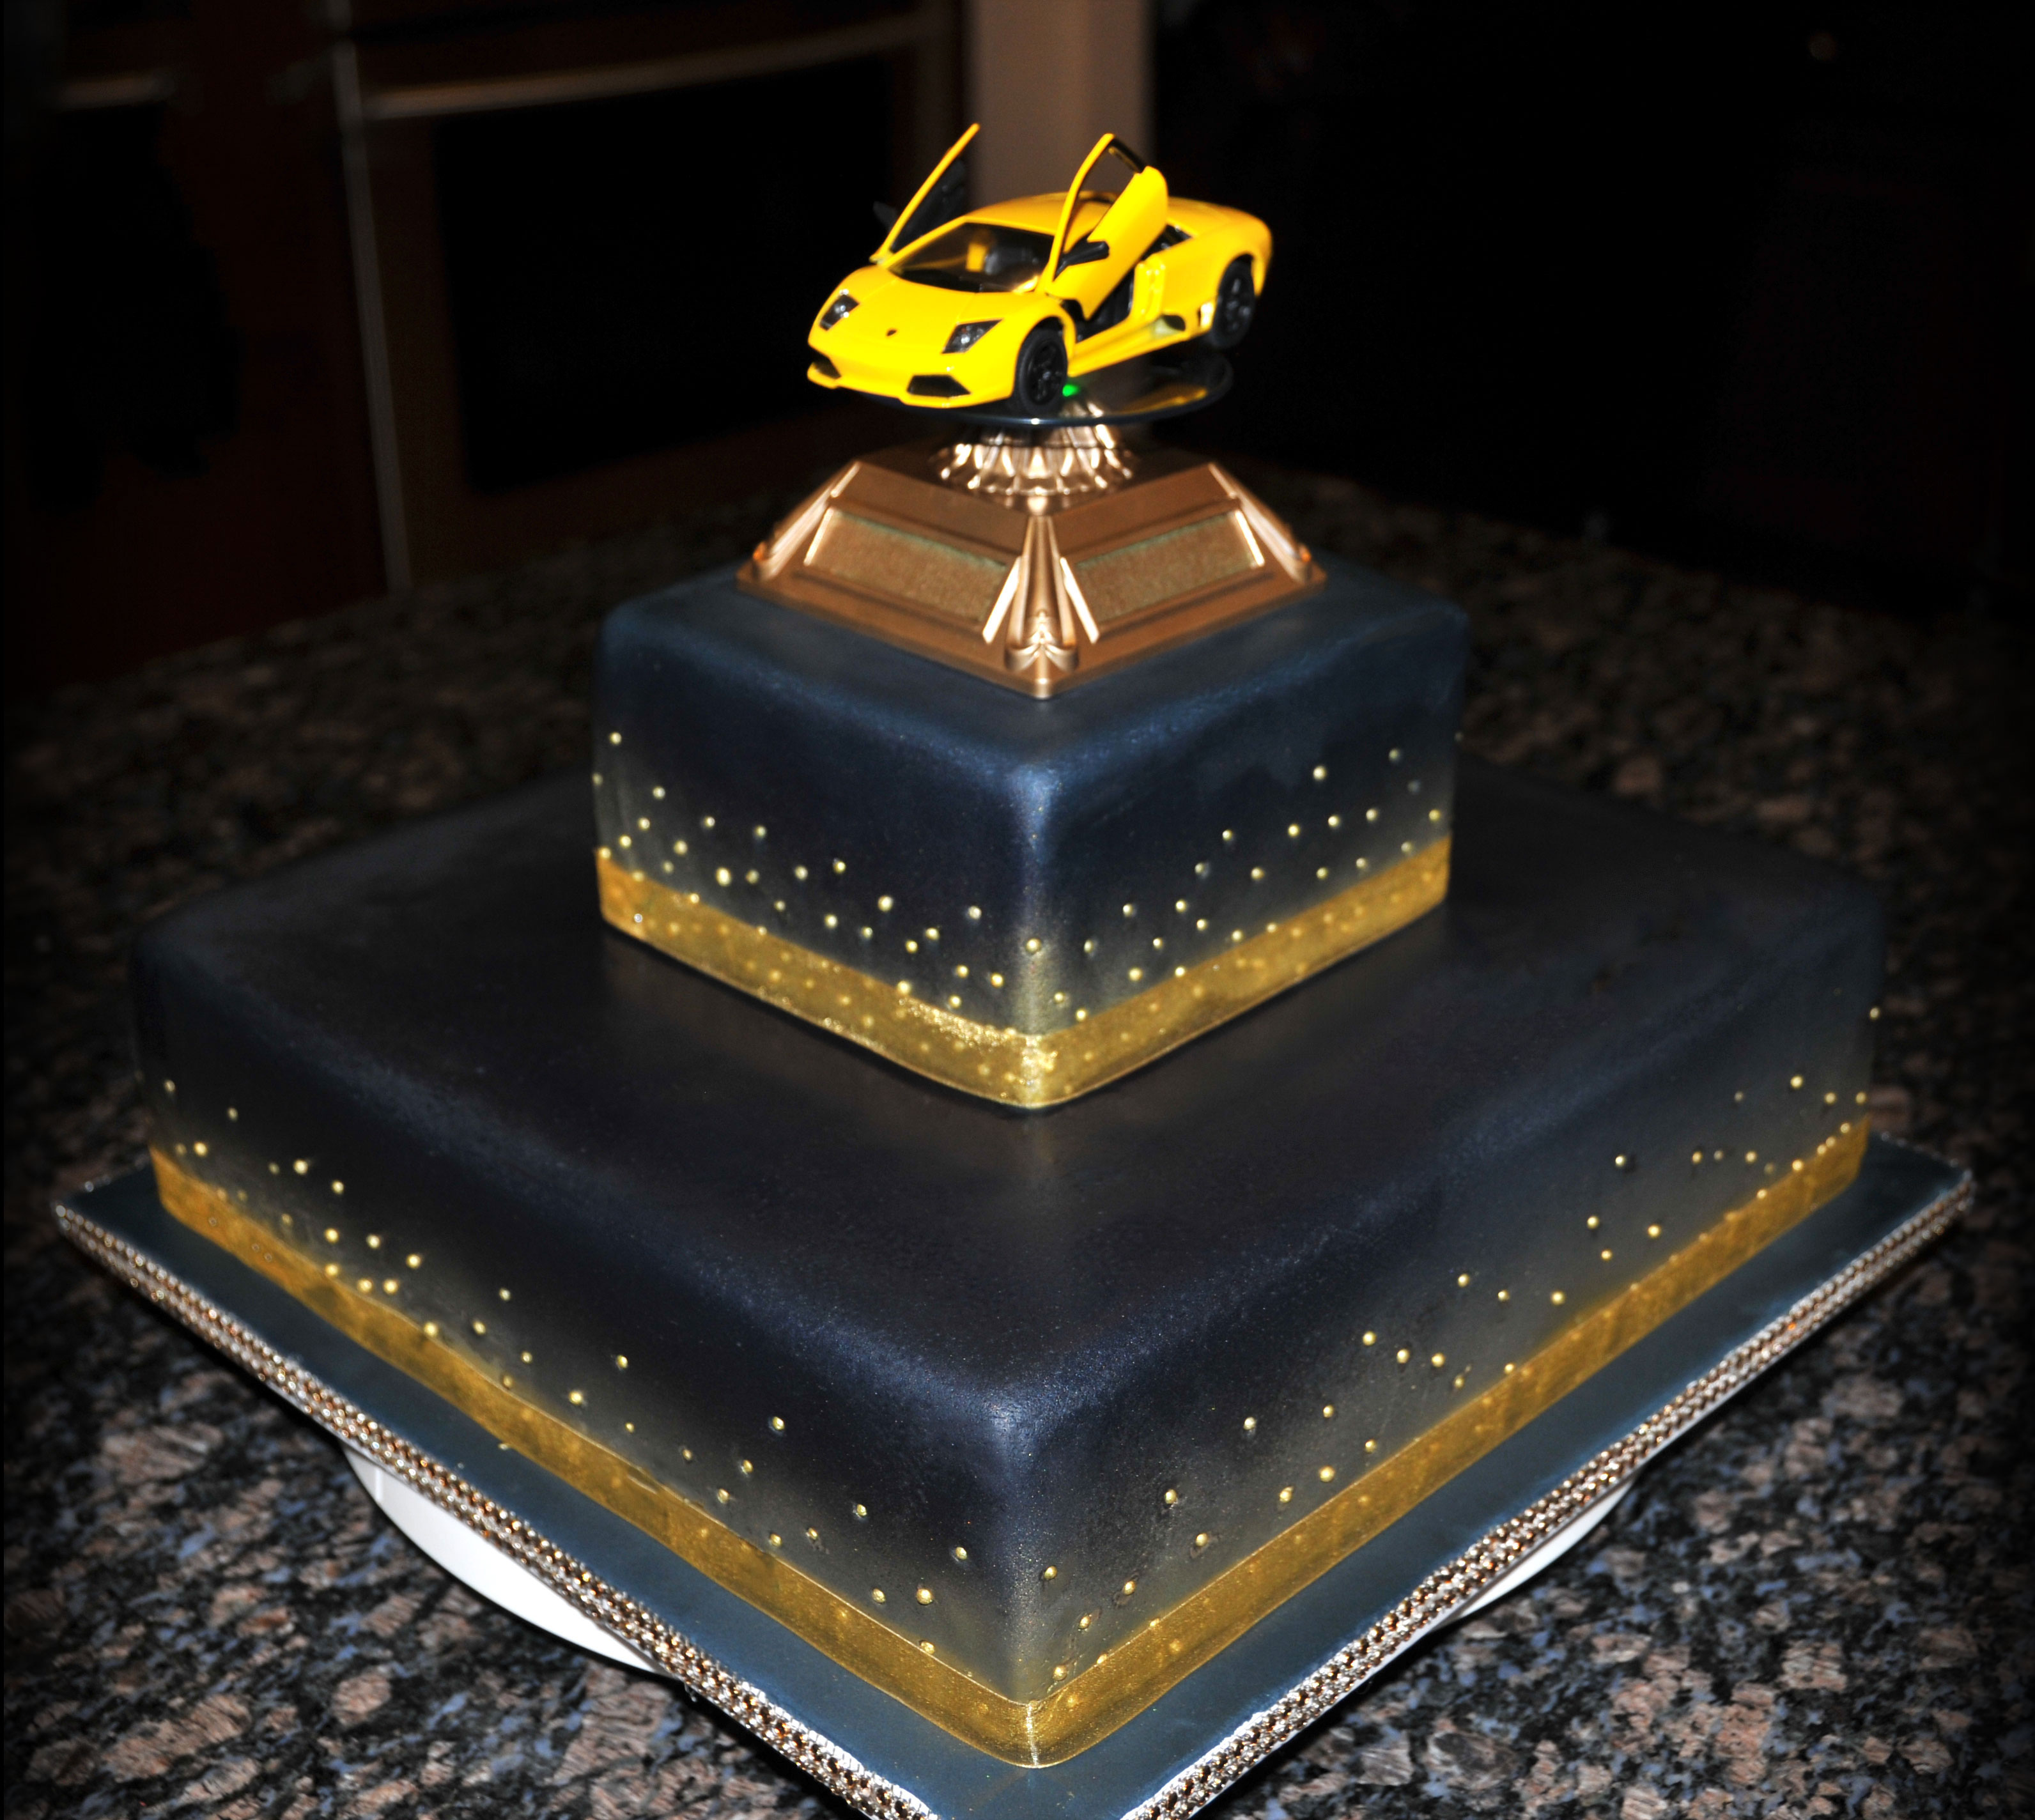 Lamborghini in the Stars Cake